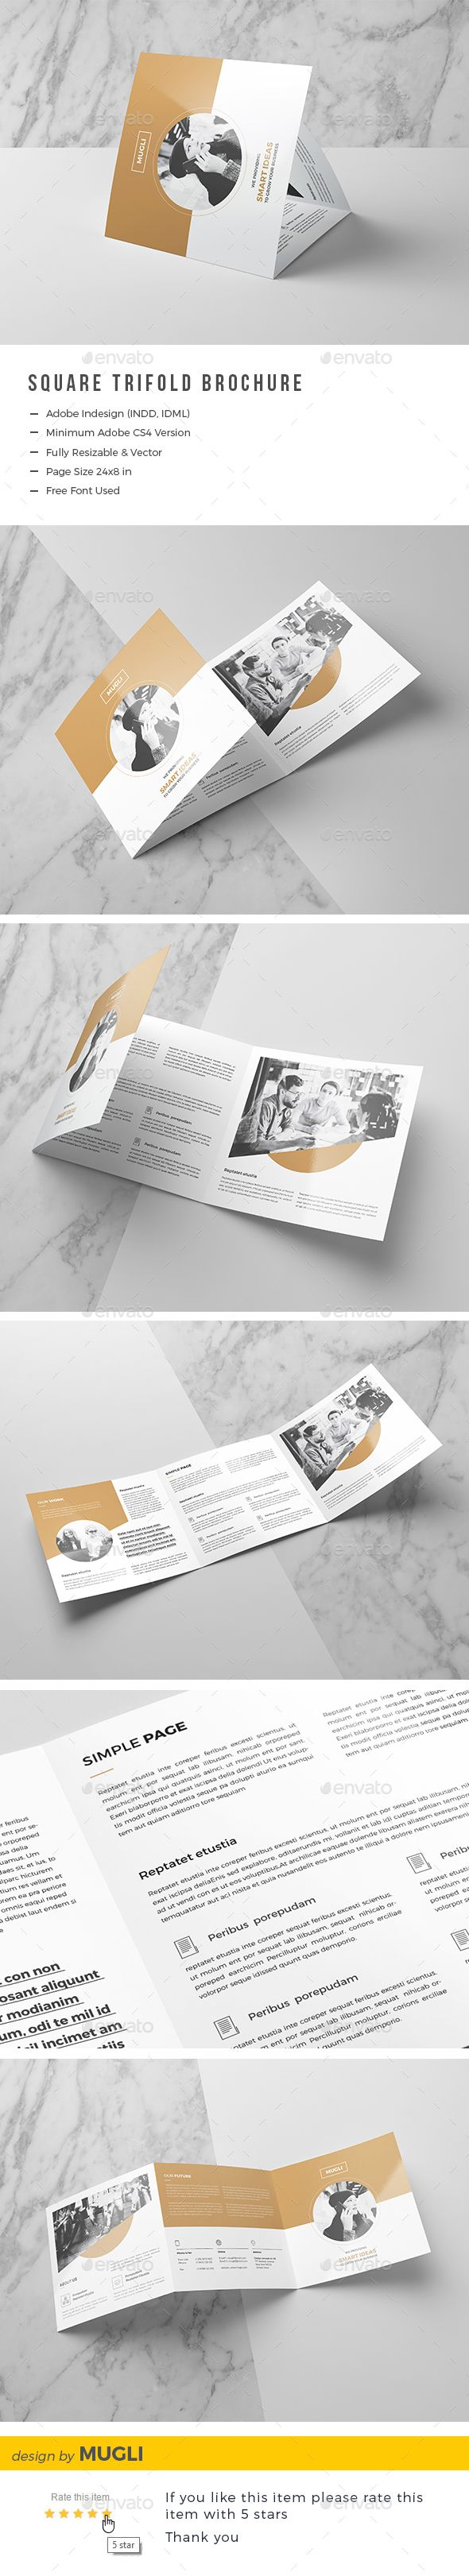 Square Trifold Brochure — InDesign INDD #square brochure #template • Download ➝ https://graphicriver.net/item/square-trifold-brochure/19768310?ref=pxcr